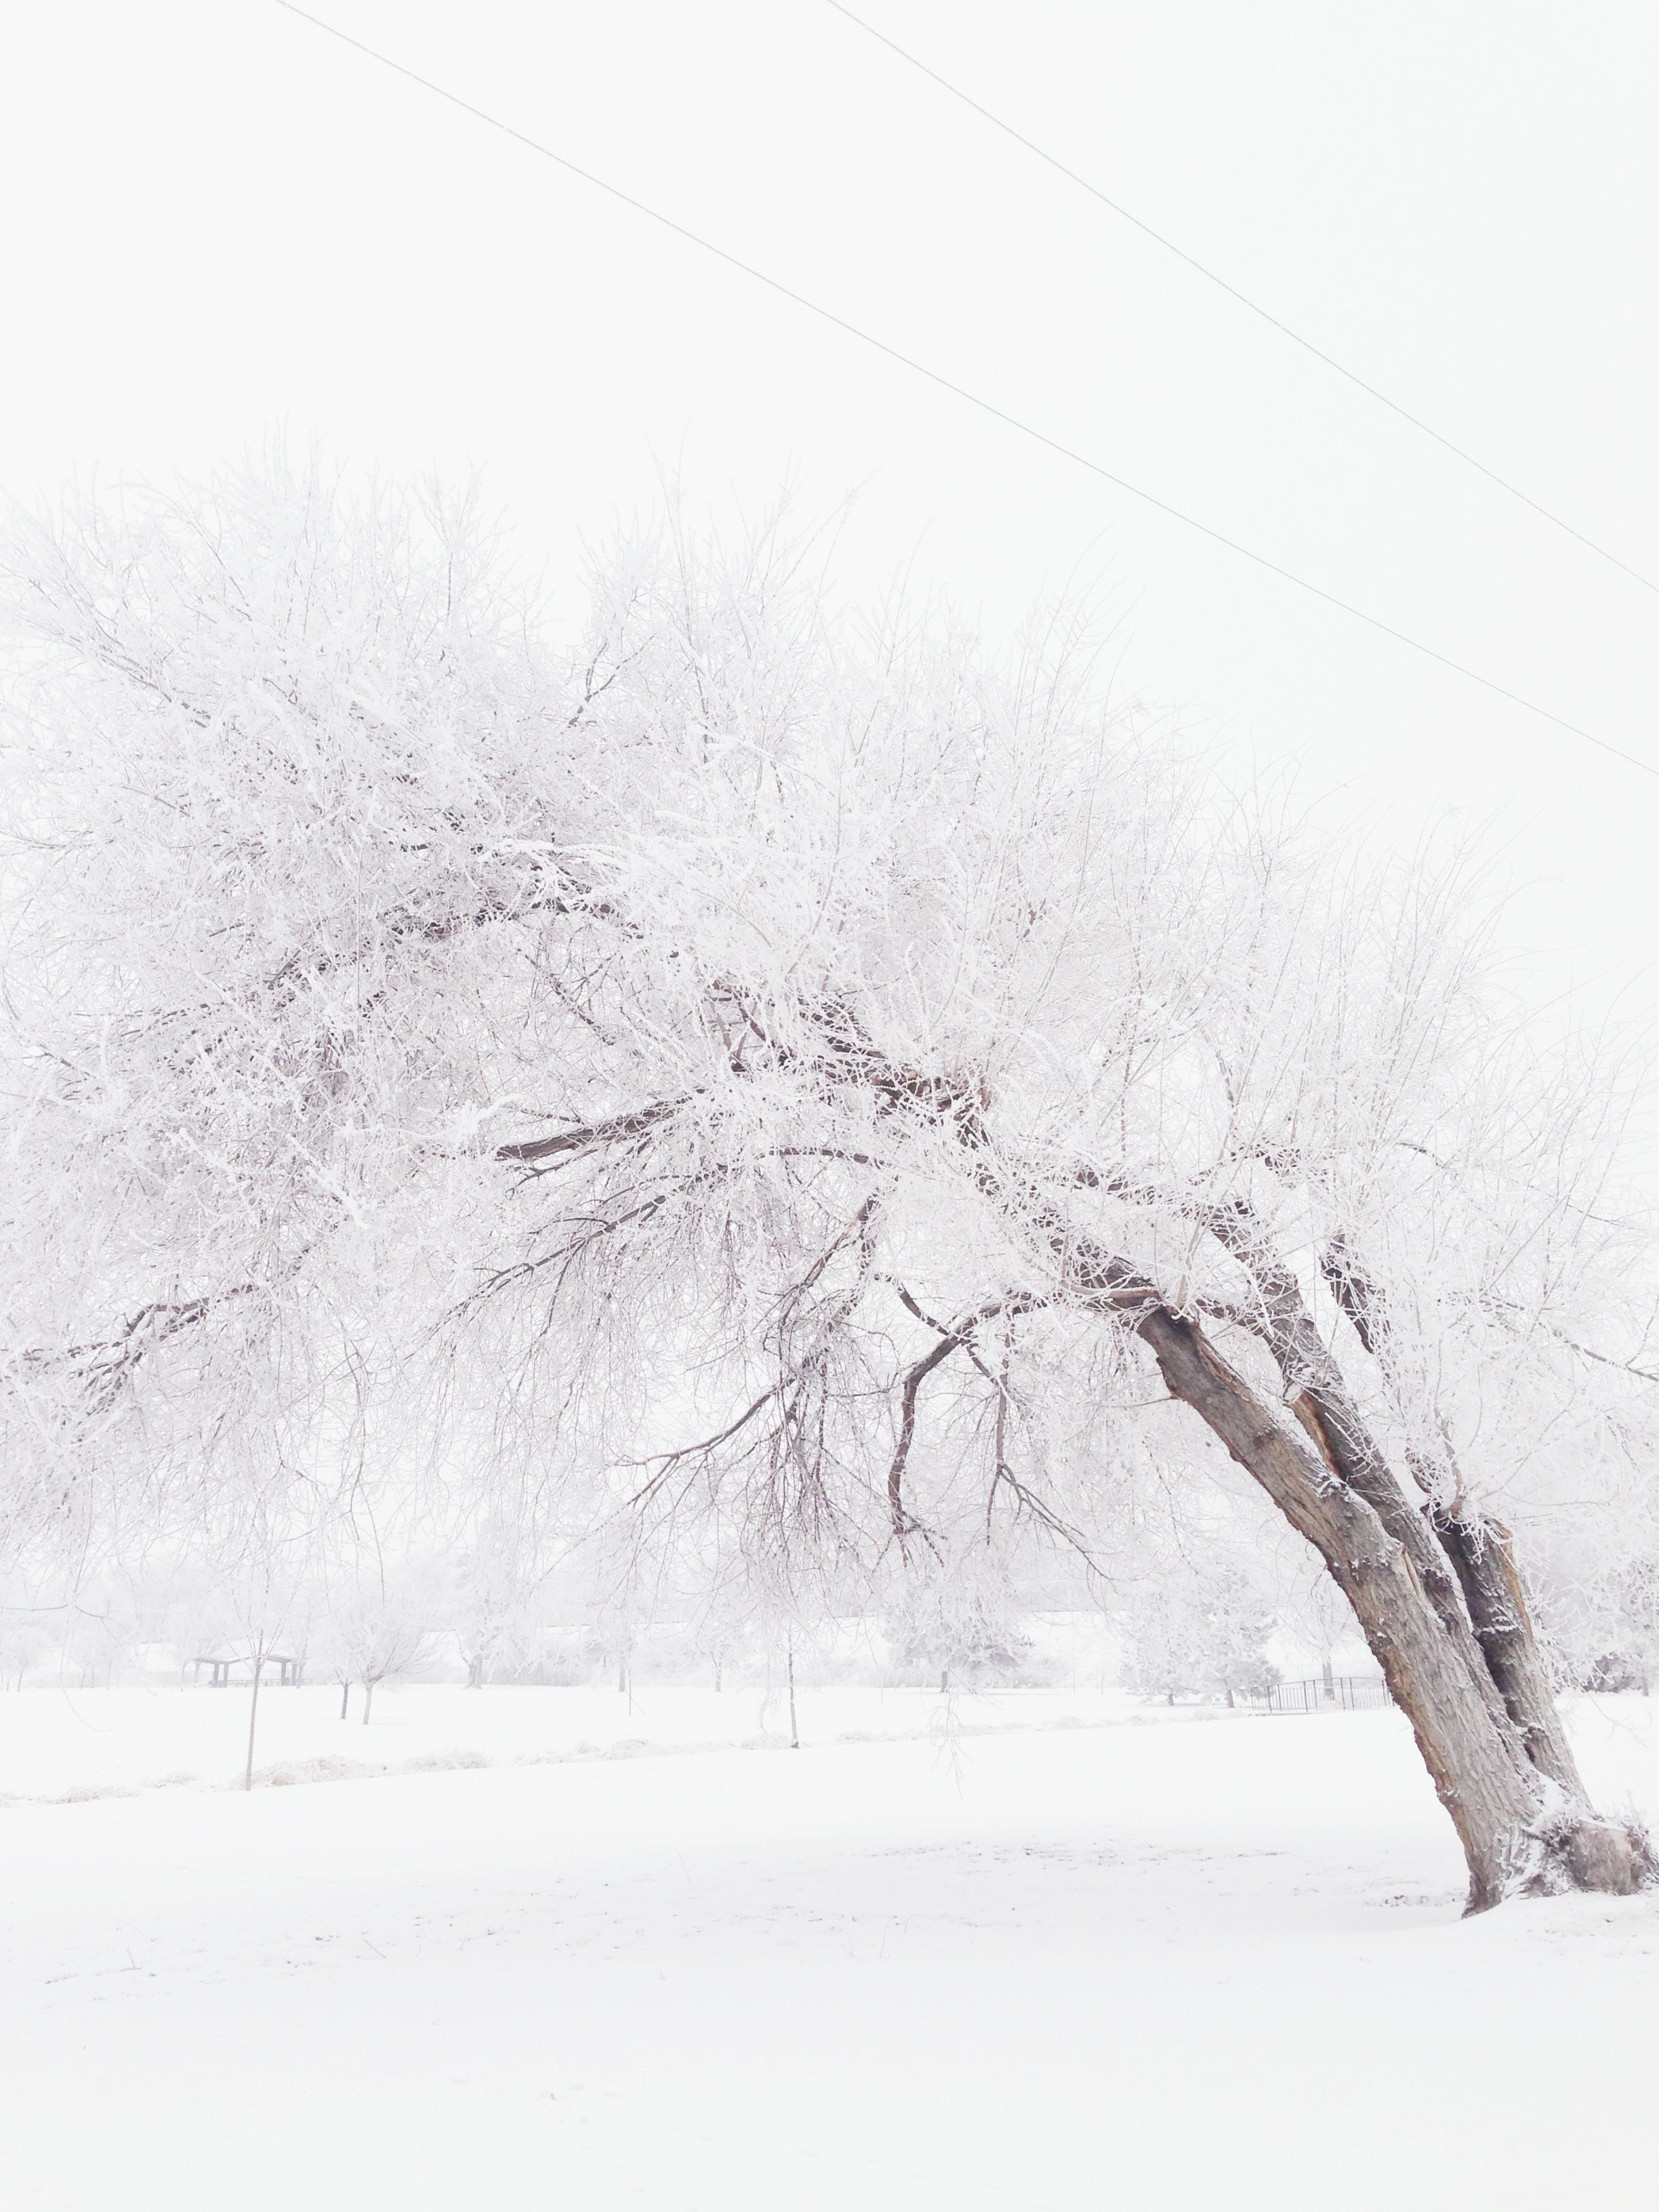 Winter Photography . | Winter Photography | Pinterest | Winter ...